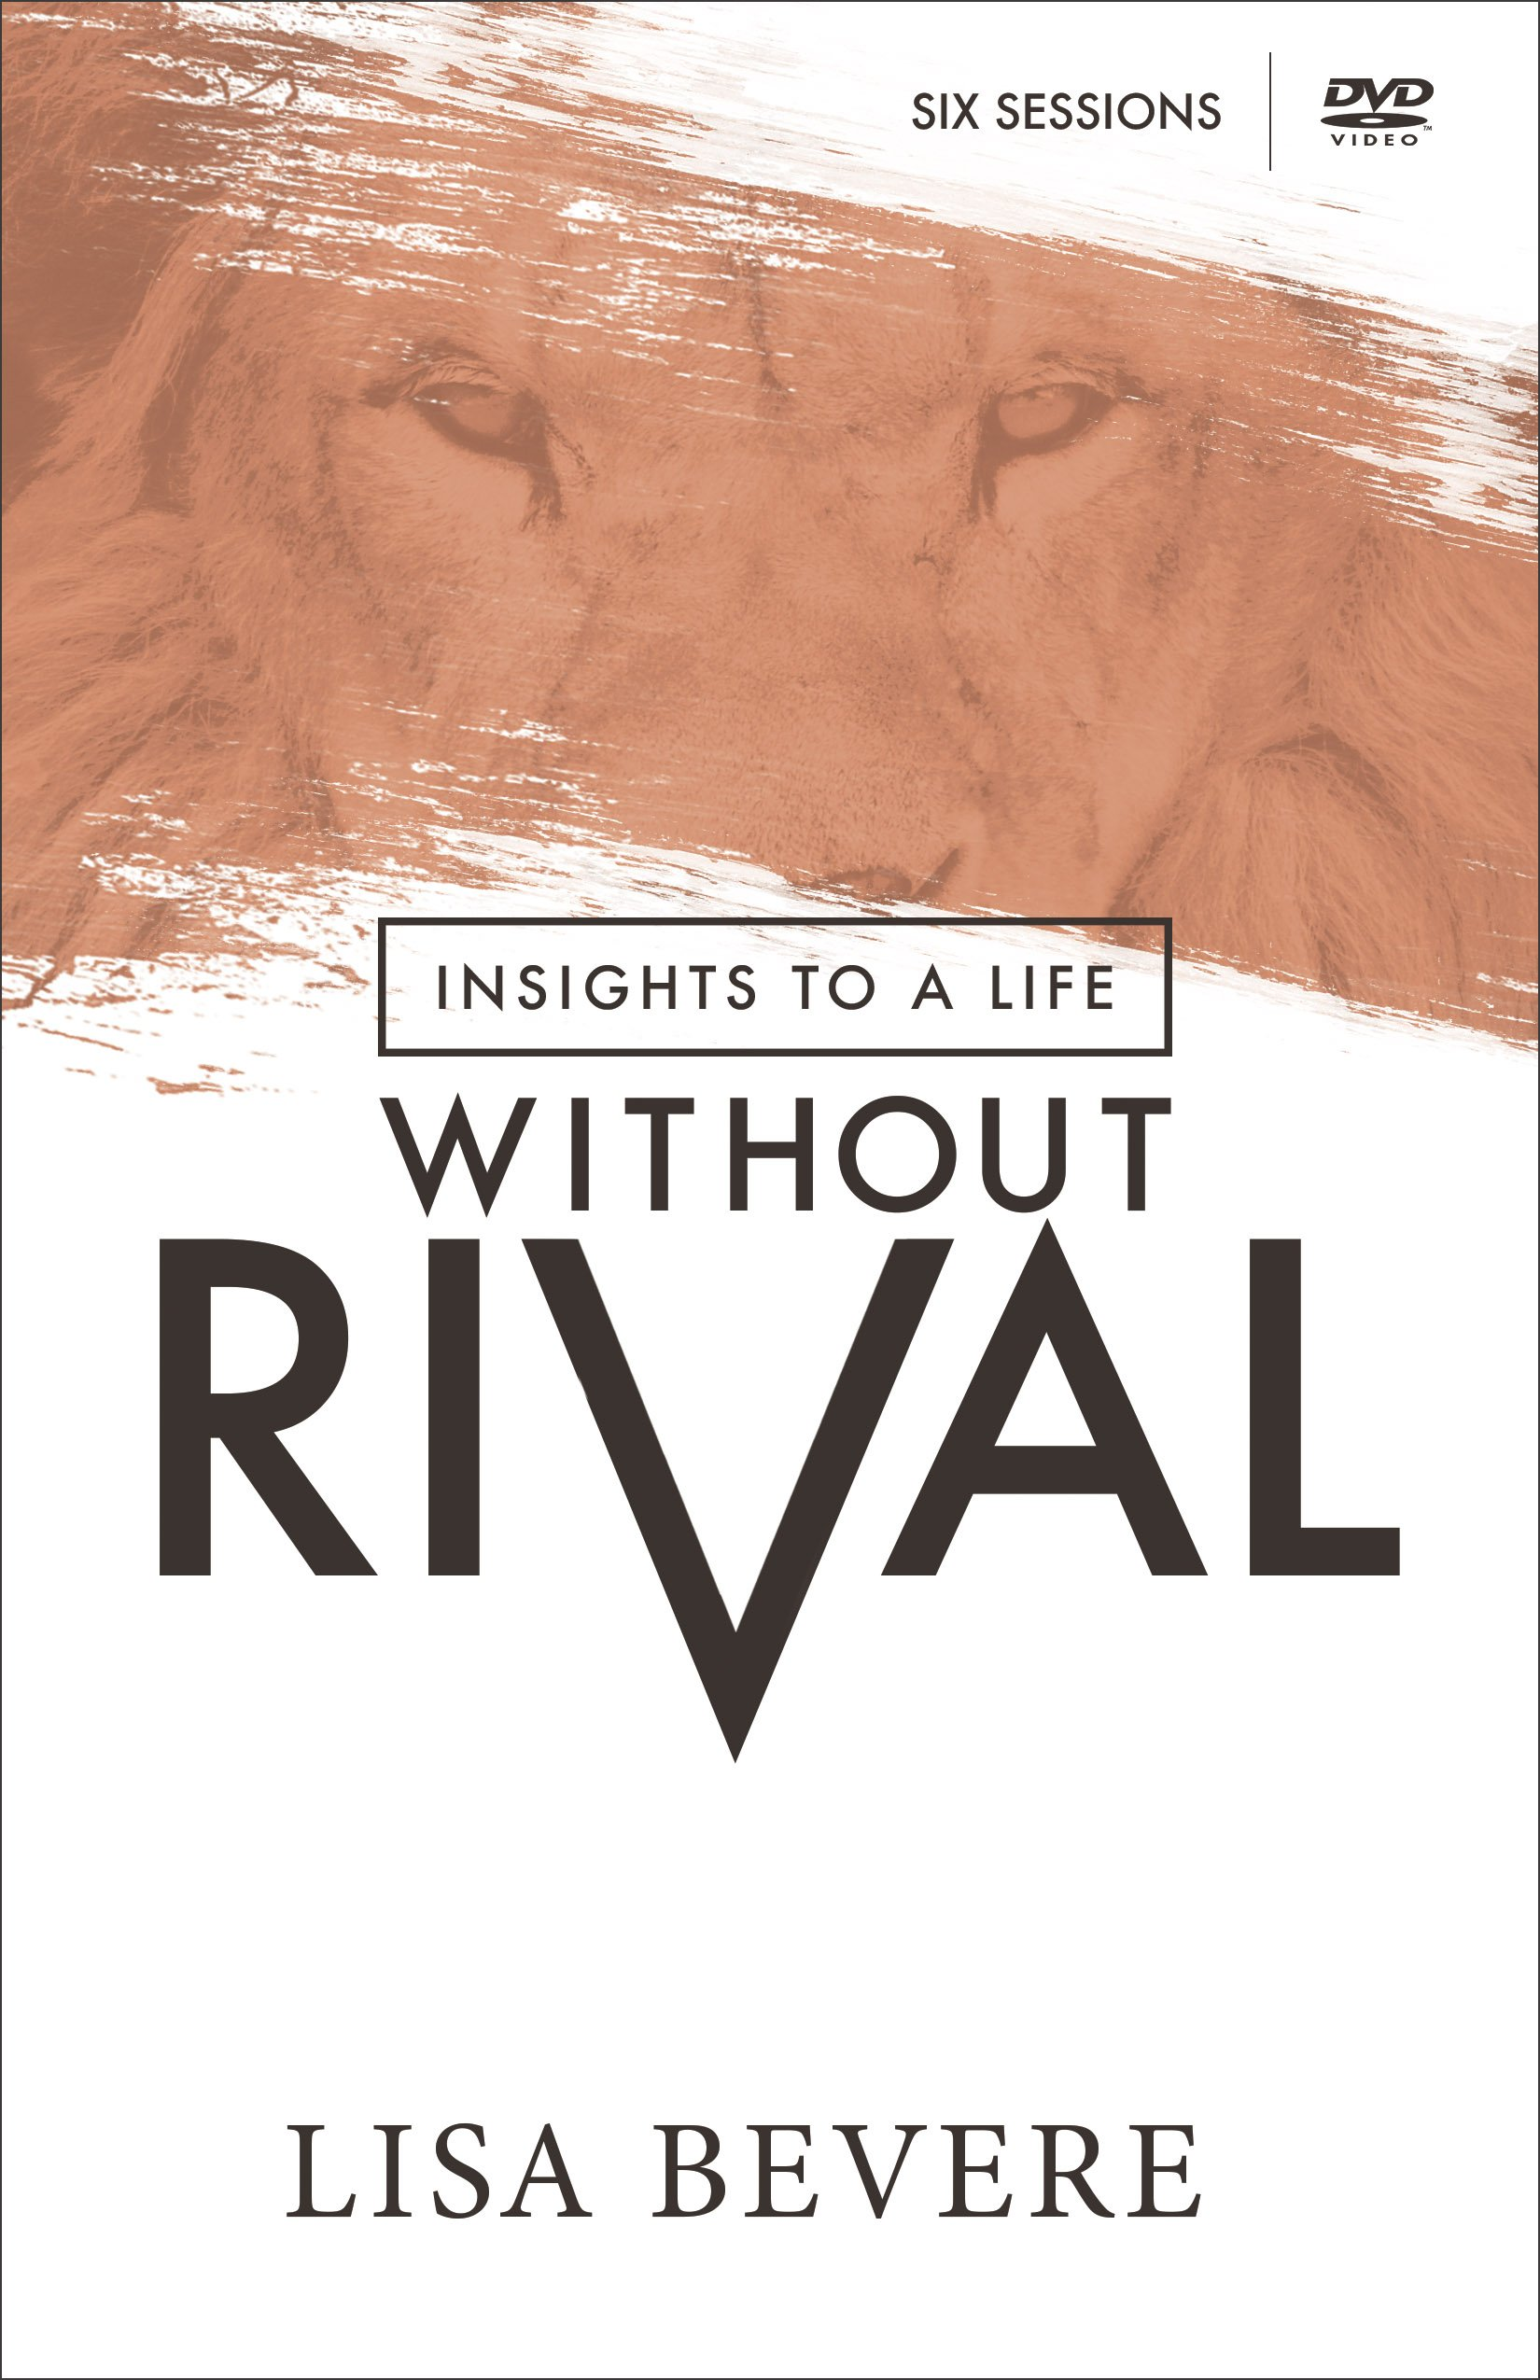 Insights to a life without rival lisa bevere 9781937558024 amazon insights to a life without rival lisa bevere 9781937558024 amazon books fandeluxe Image collections